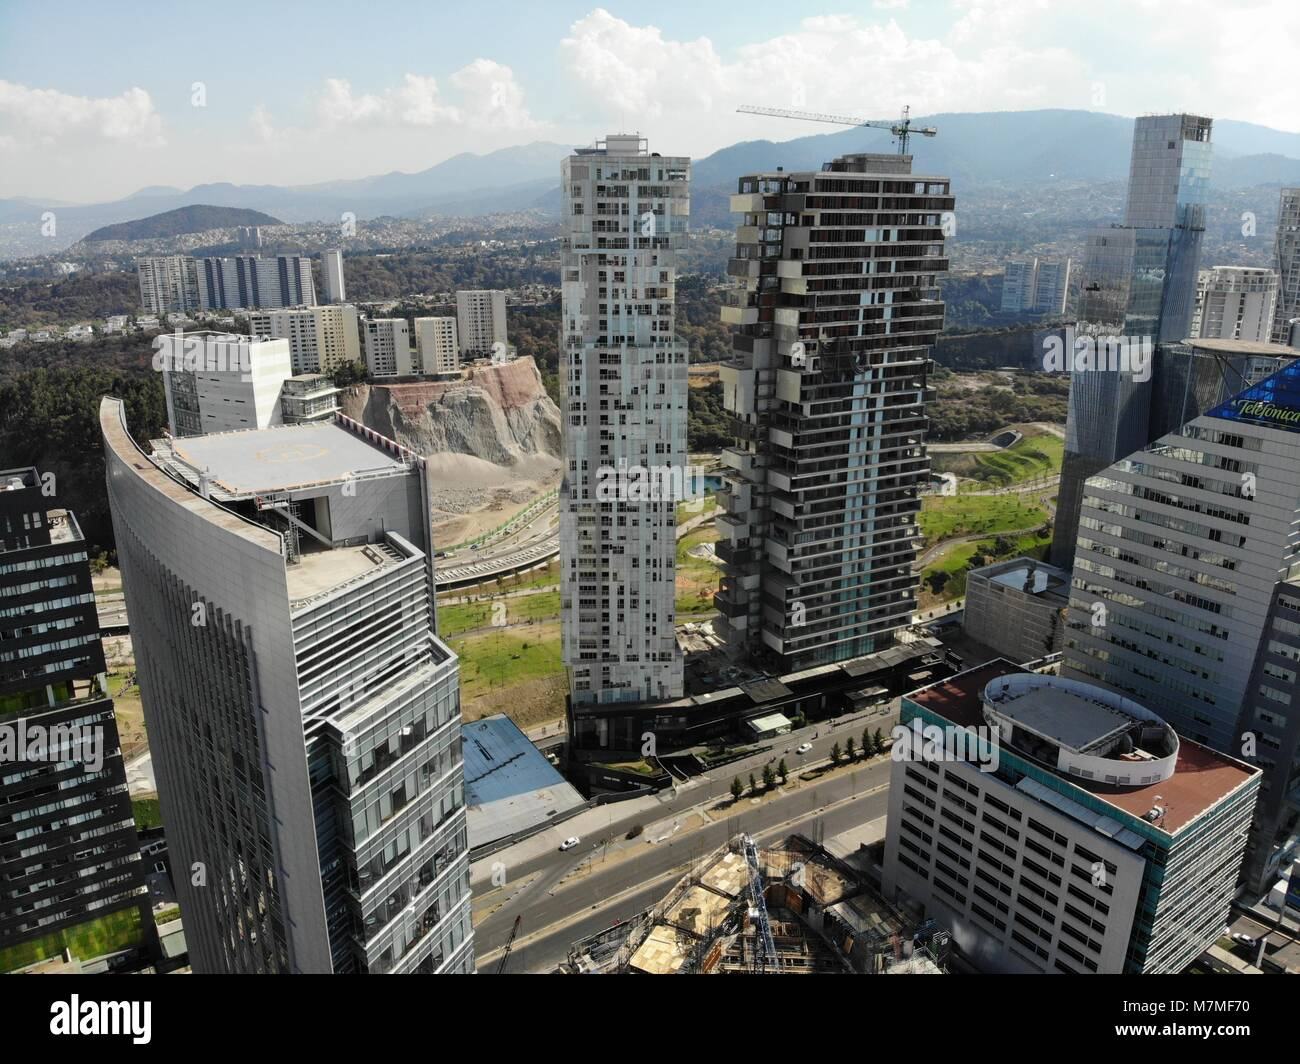 Santa Fe Is One Of Mexico City S Major Business Districts Located In Stock Photo Alamy